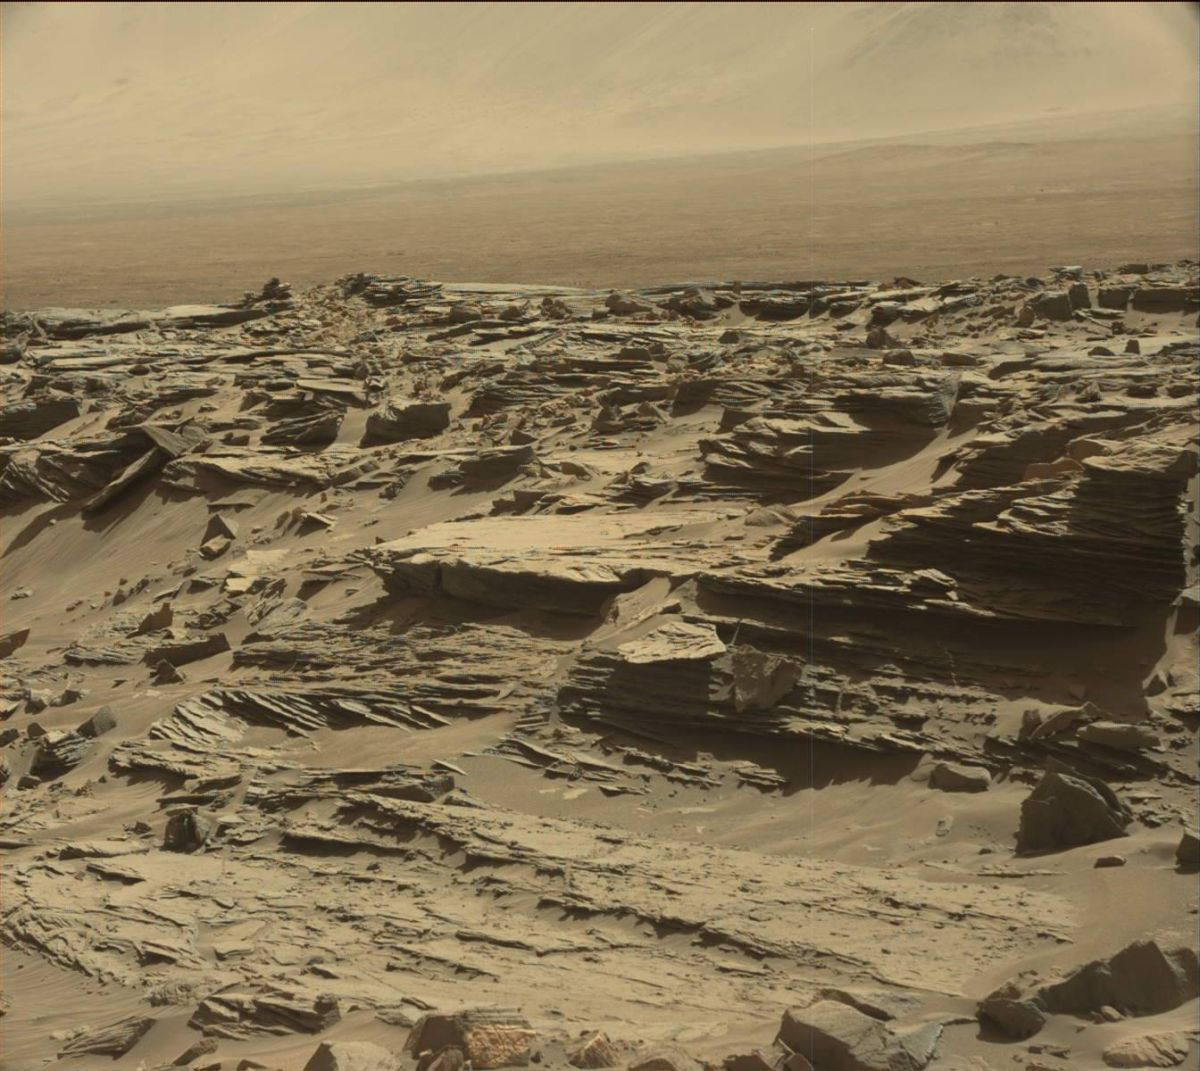 Rtg In The Martian: Power Issue Curbs Drive Of Curiosity Mars Rover